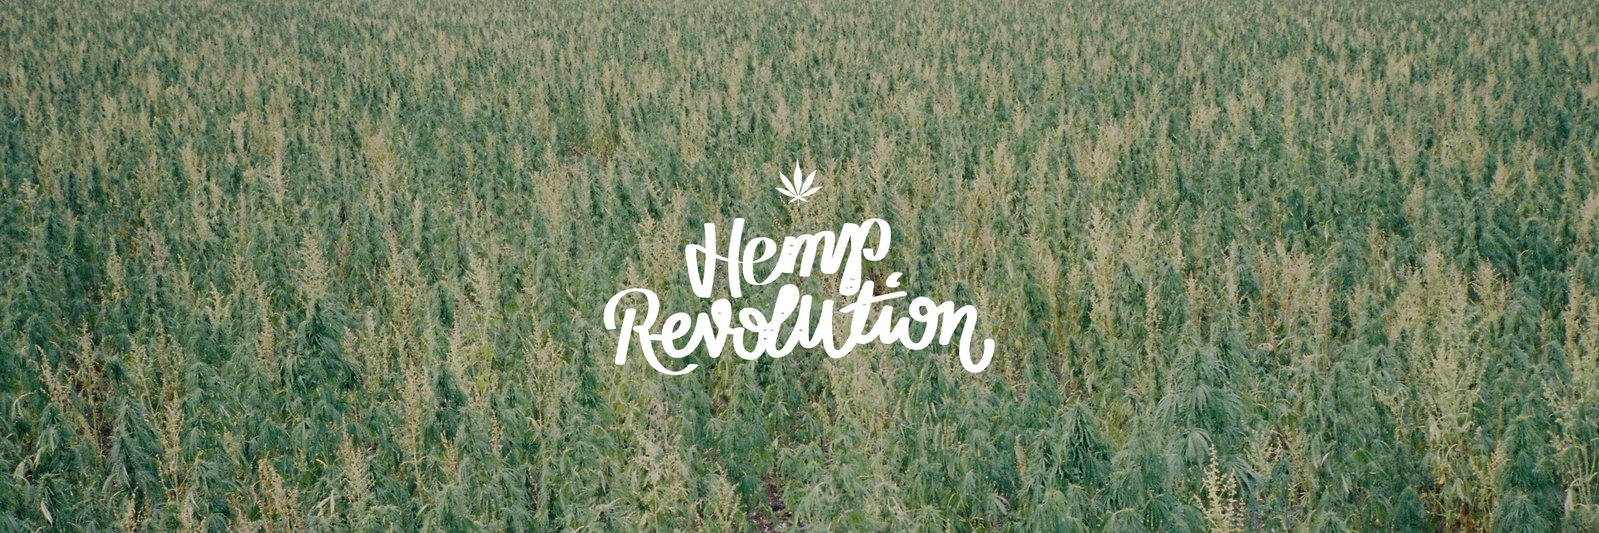 c262d87b0e Such archaic views of marijuana are on the decline, and pretty soon both  hemp and cannabis will be grown to their full potential. We here at Shop  CBD Online ...